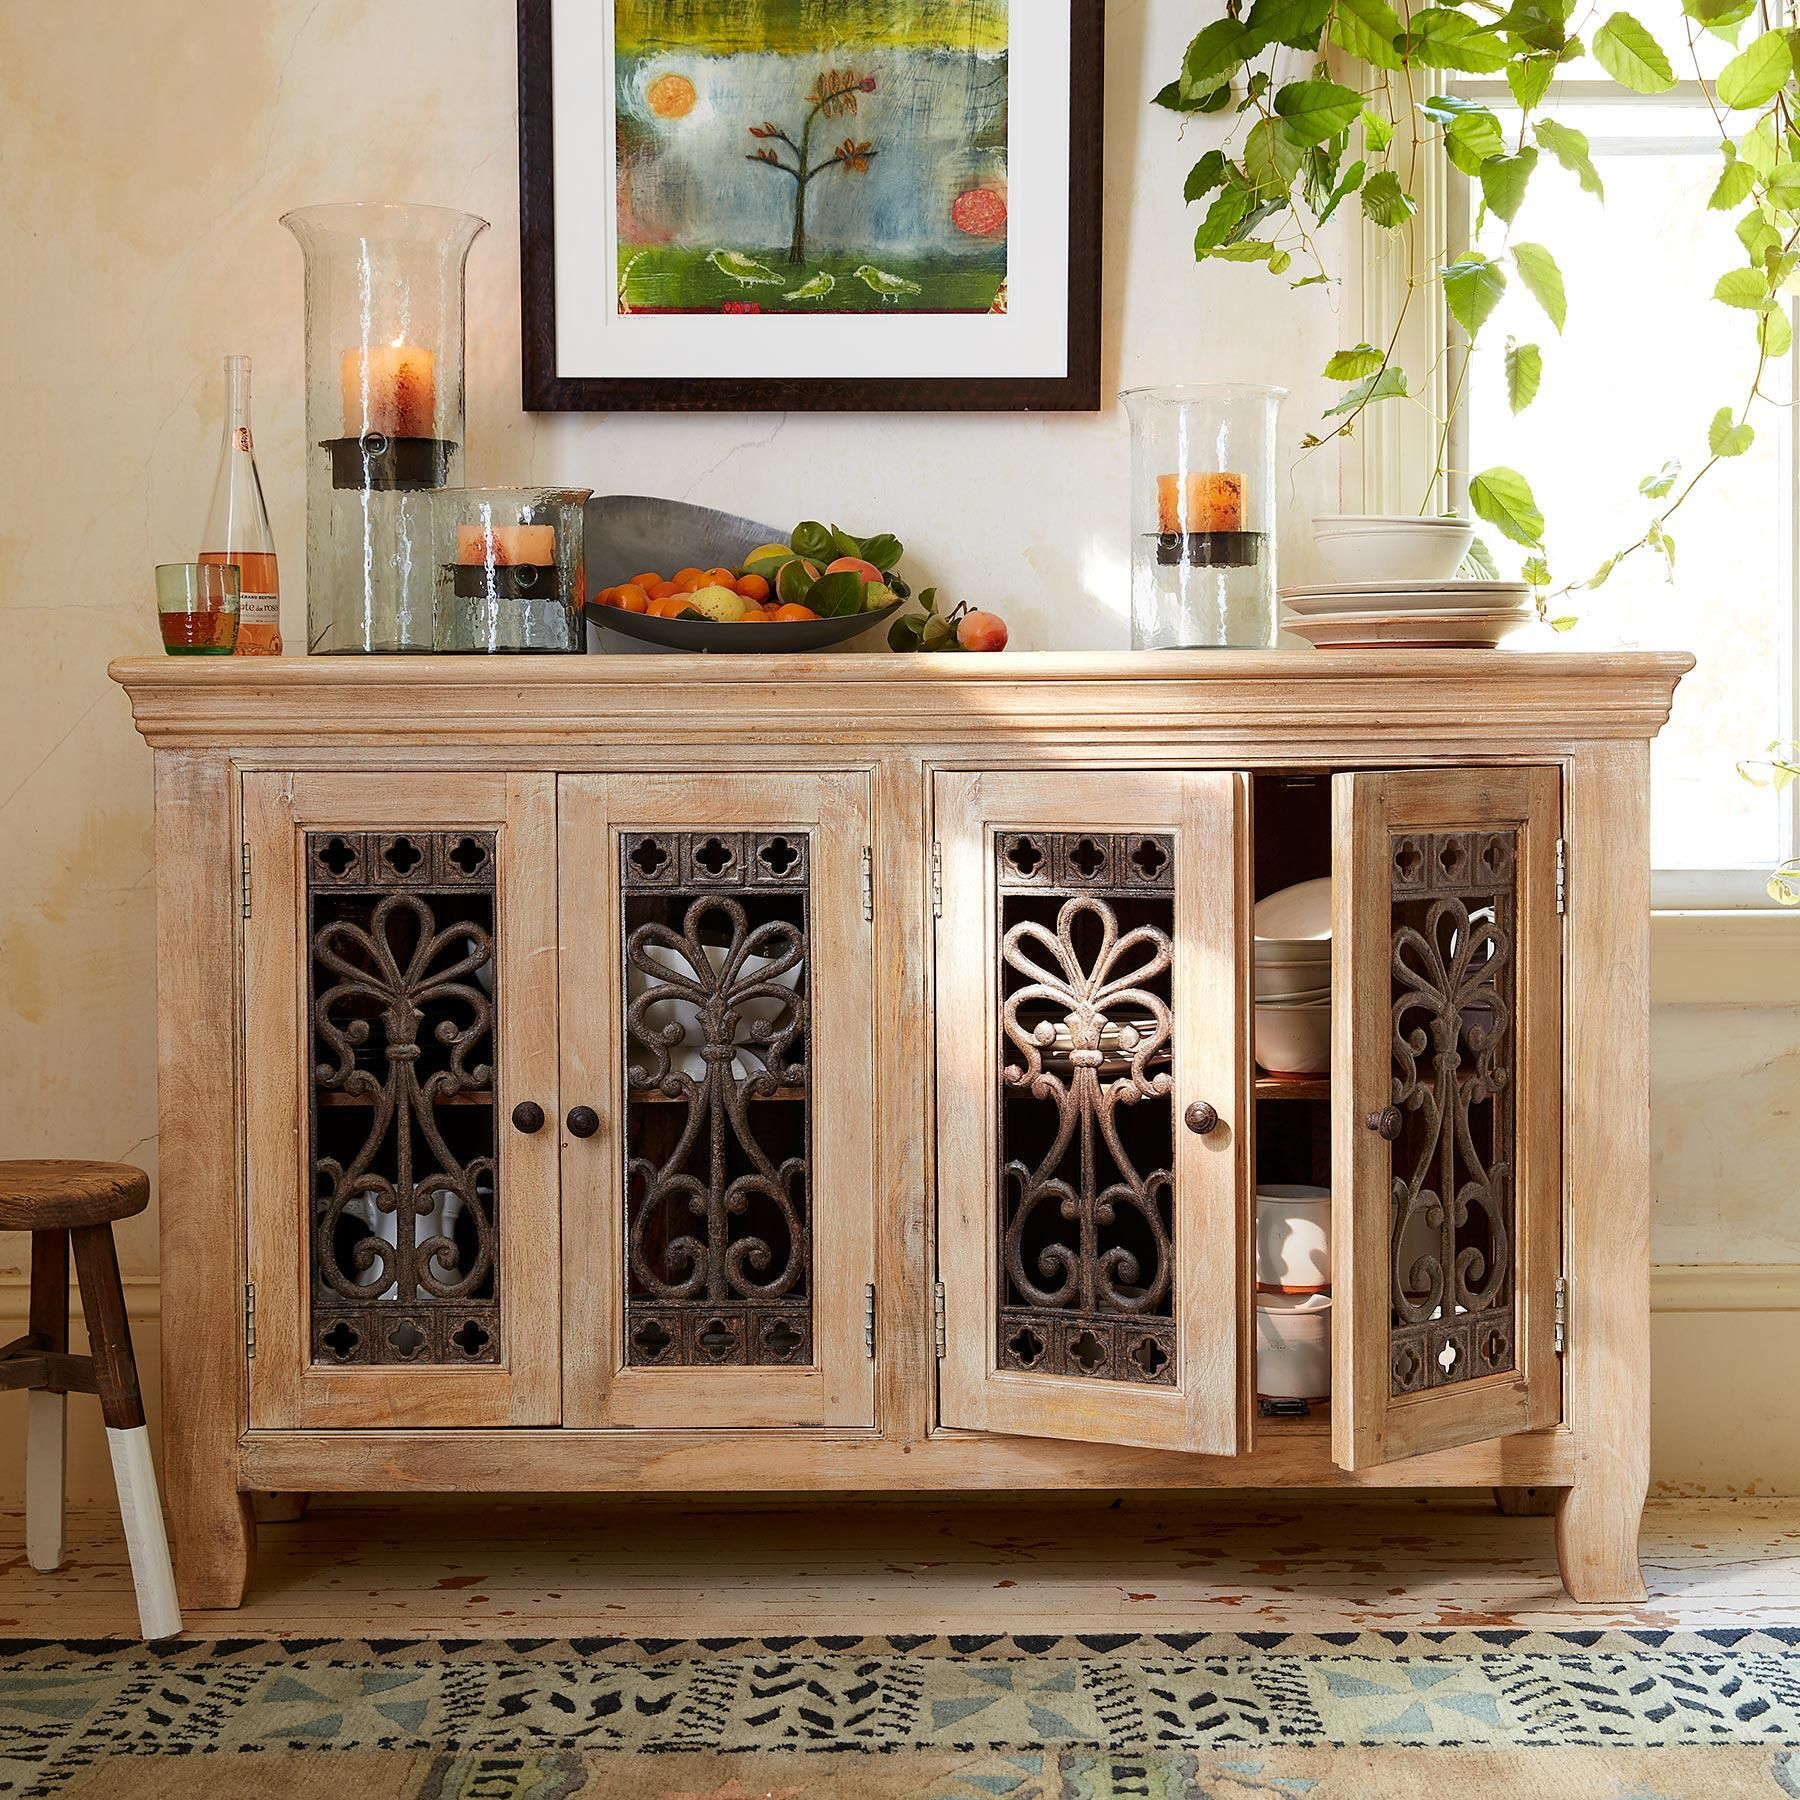 Brunswick Console Completely handcrafted from sustainable plantation-grown mango wood with a decorative iron grill on four doors. Two fixed shelves. & BRUNSWICK CONSOLE -- Completely handcrafted from sustainable ... pezcame.com